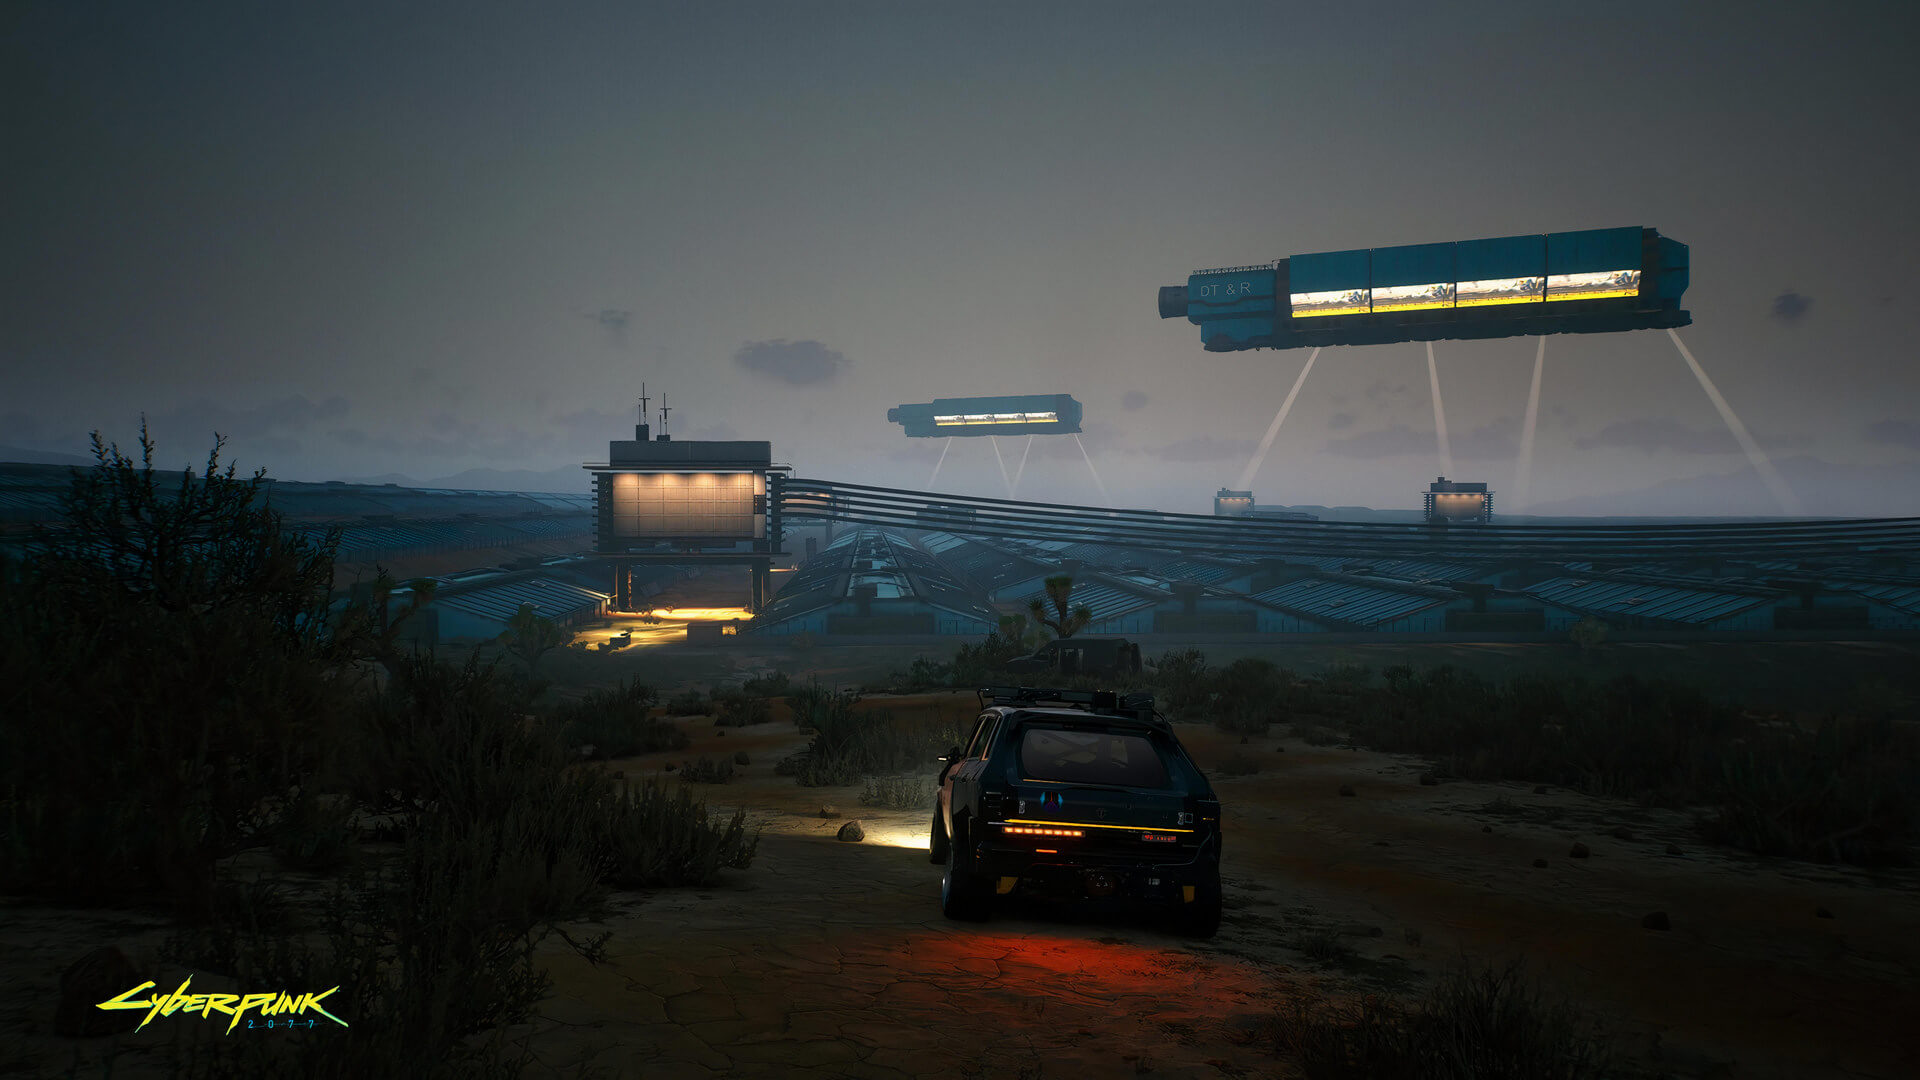 Cyberpunk 2077 Badlands screenshot